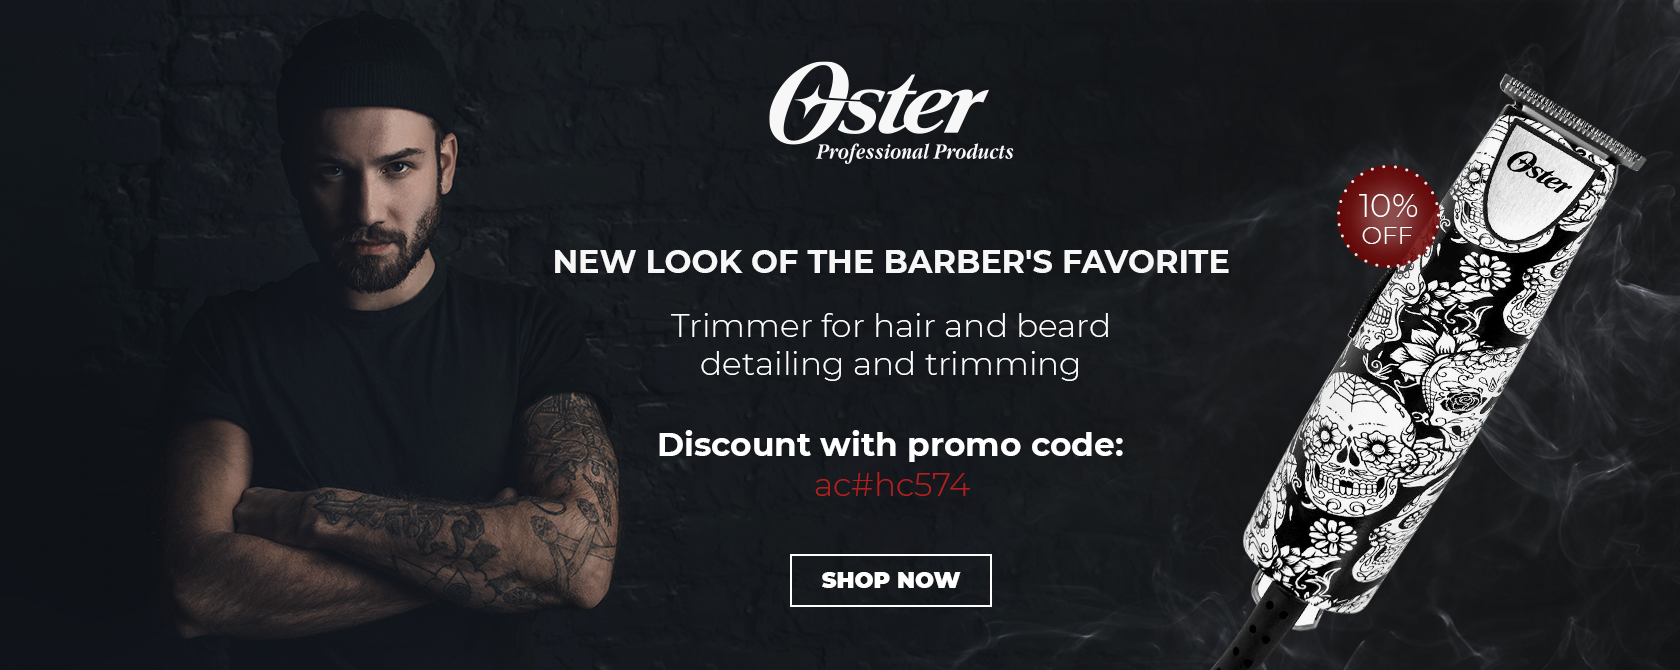 oster trimmer promo code